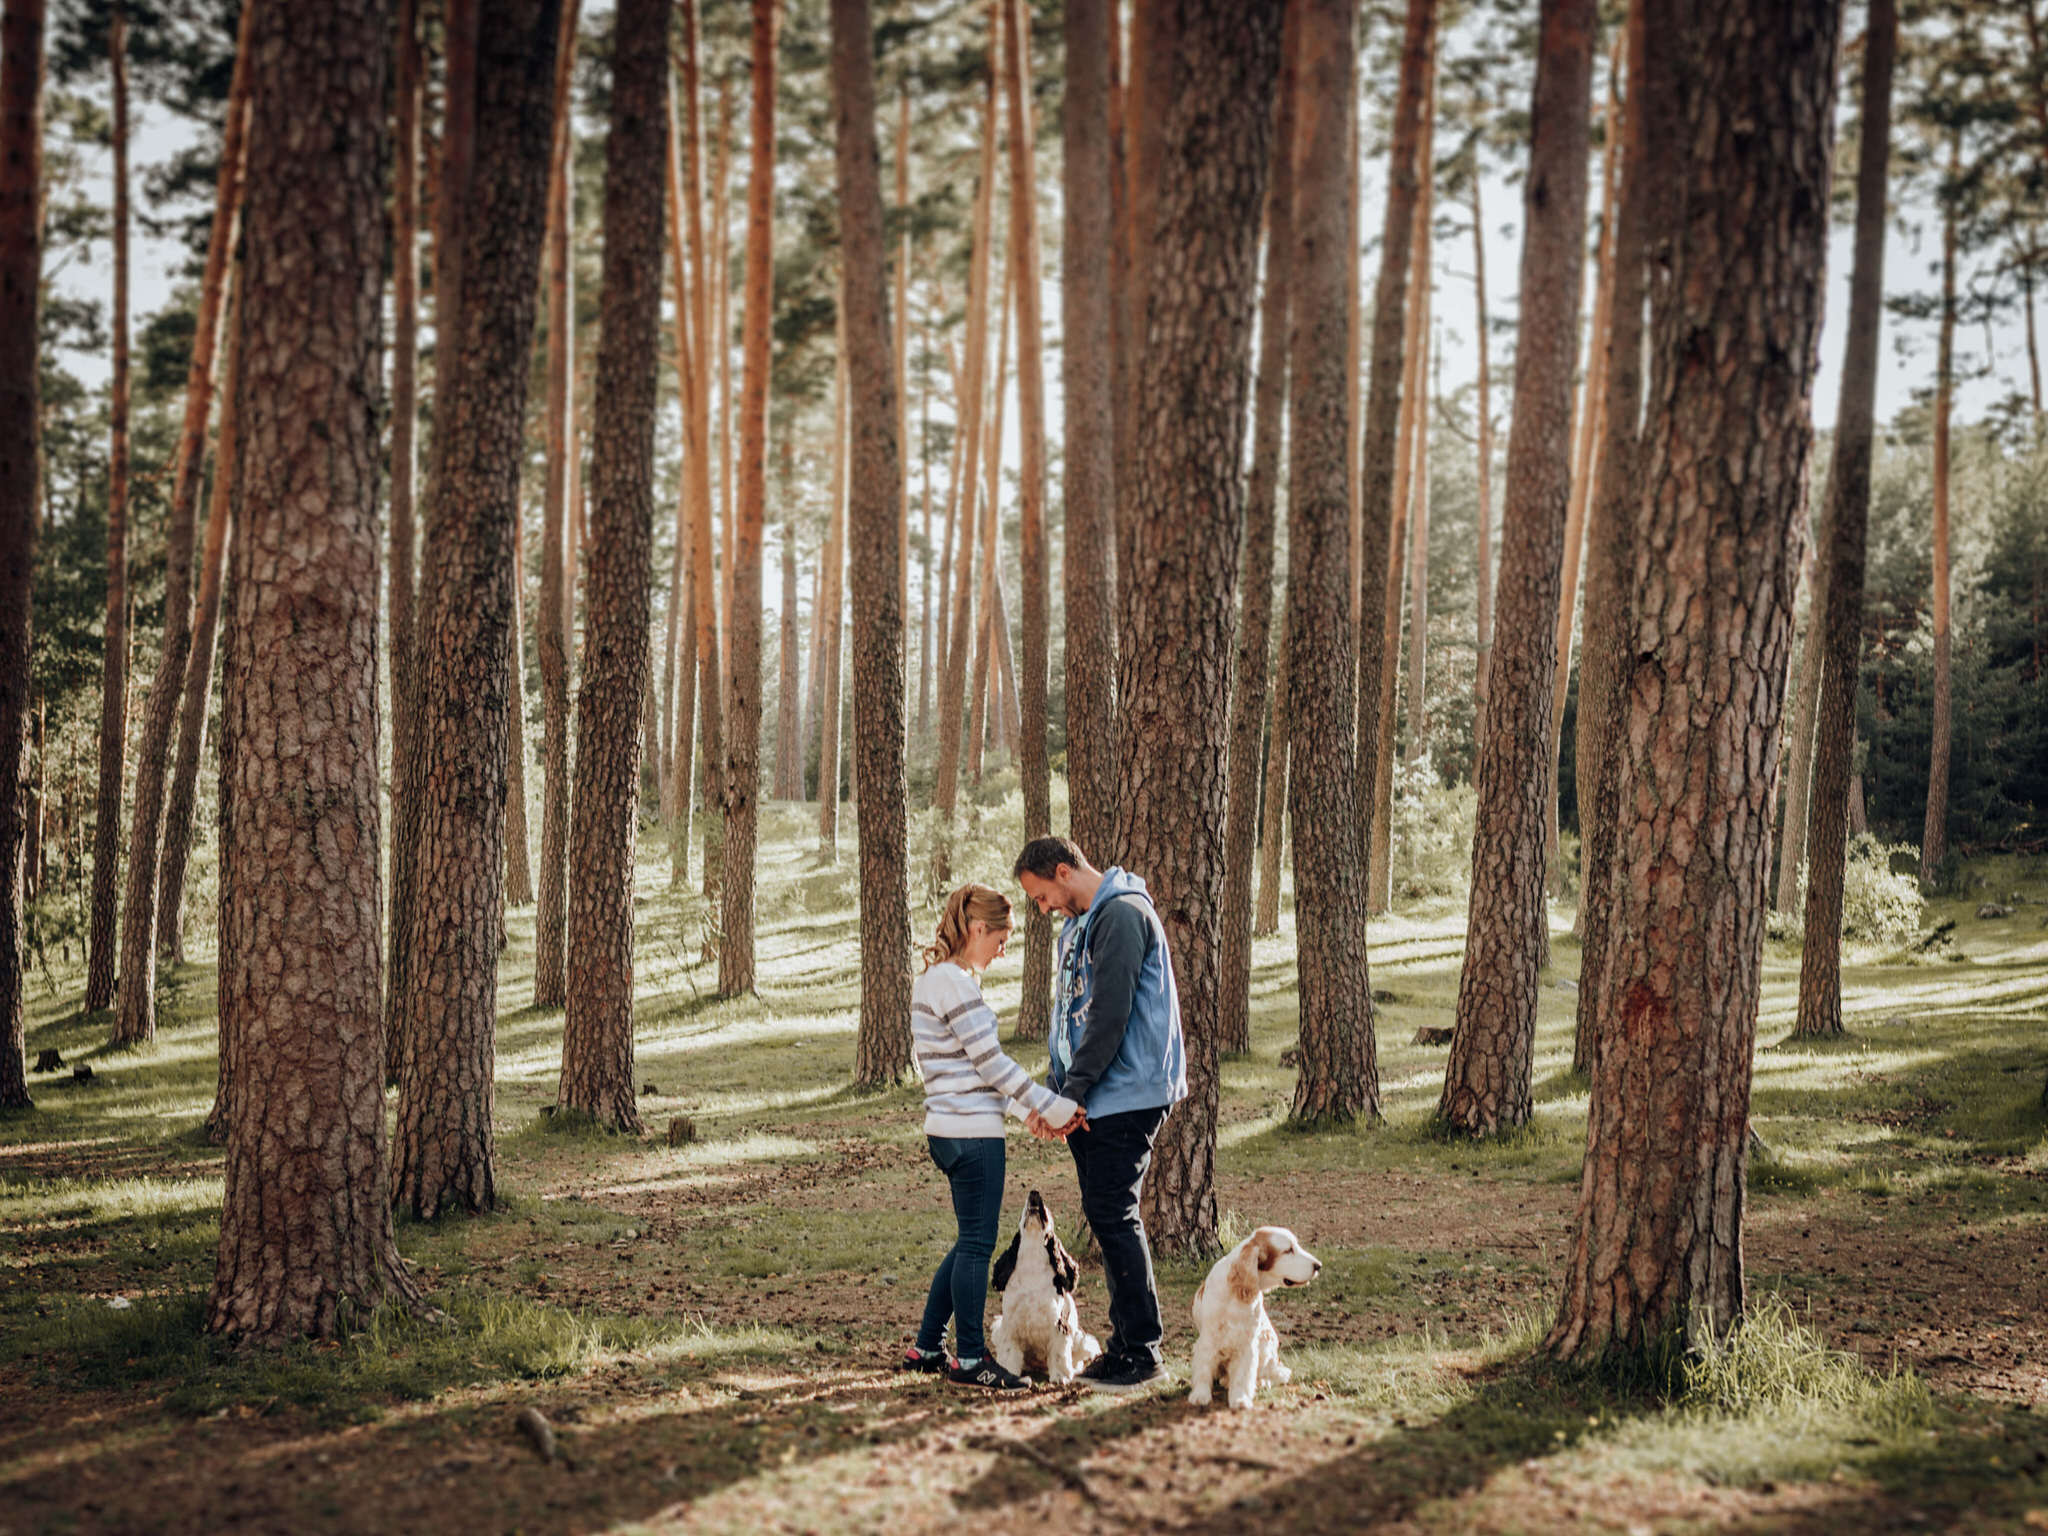 preboda-pet-friendly-en-el-pinar-de-valsain-segovia